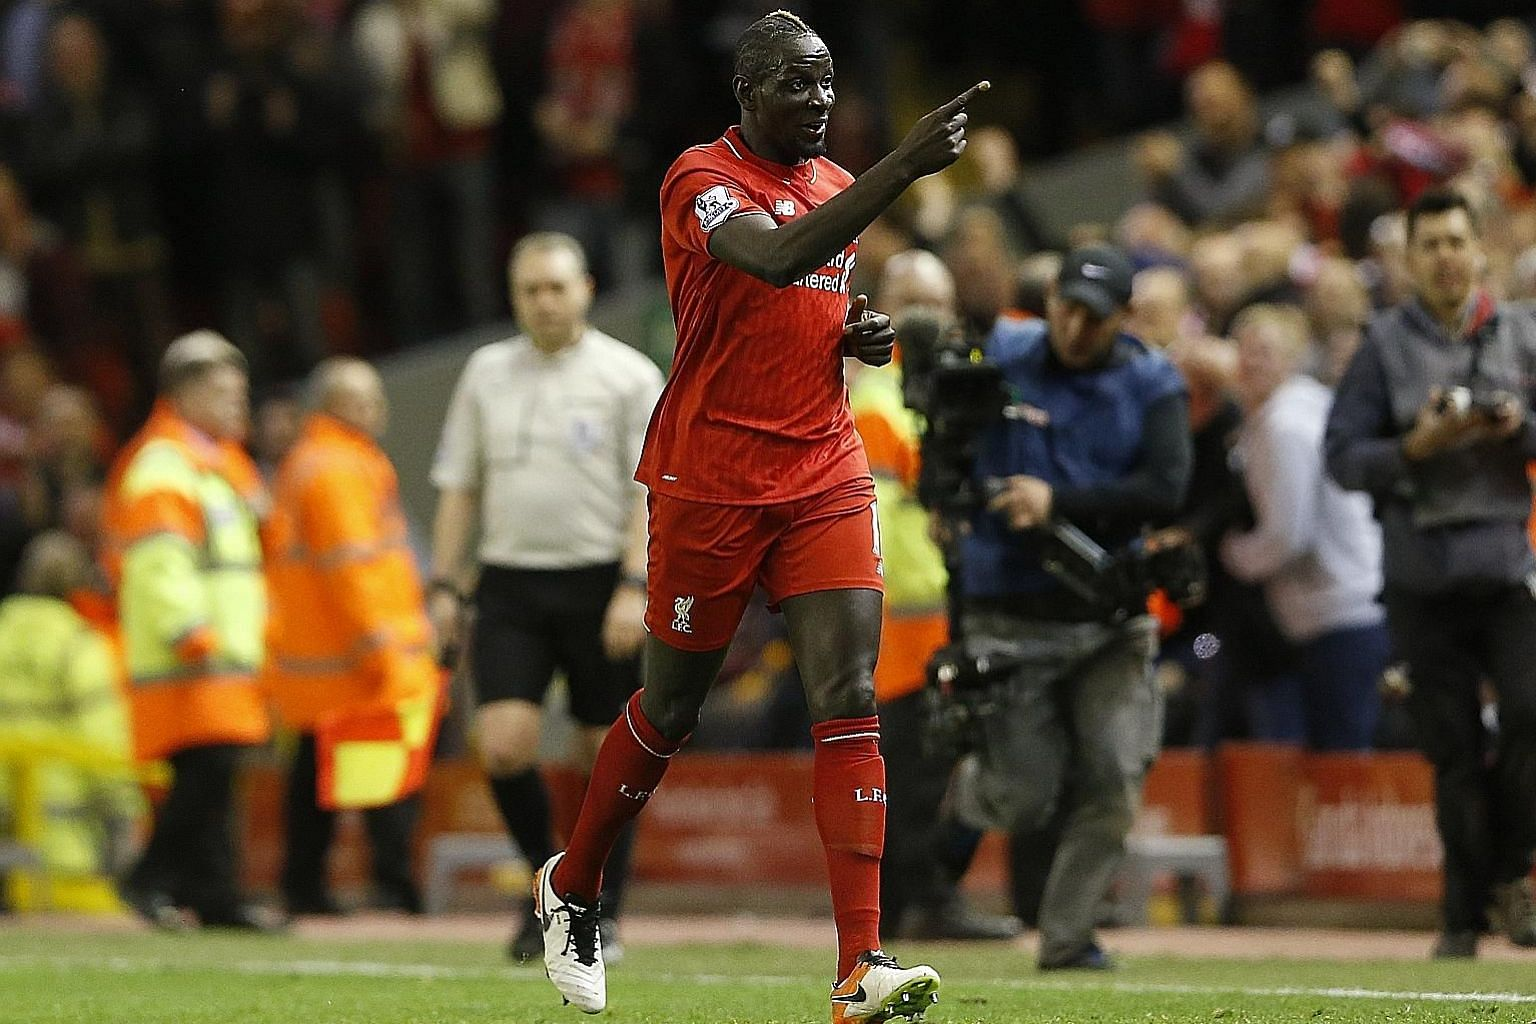 Liverpool will play the rest of the season without Mamadou Sakho, after the defender was slapped with a provisional 30-day ban.